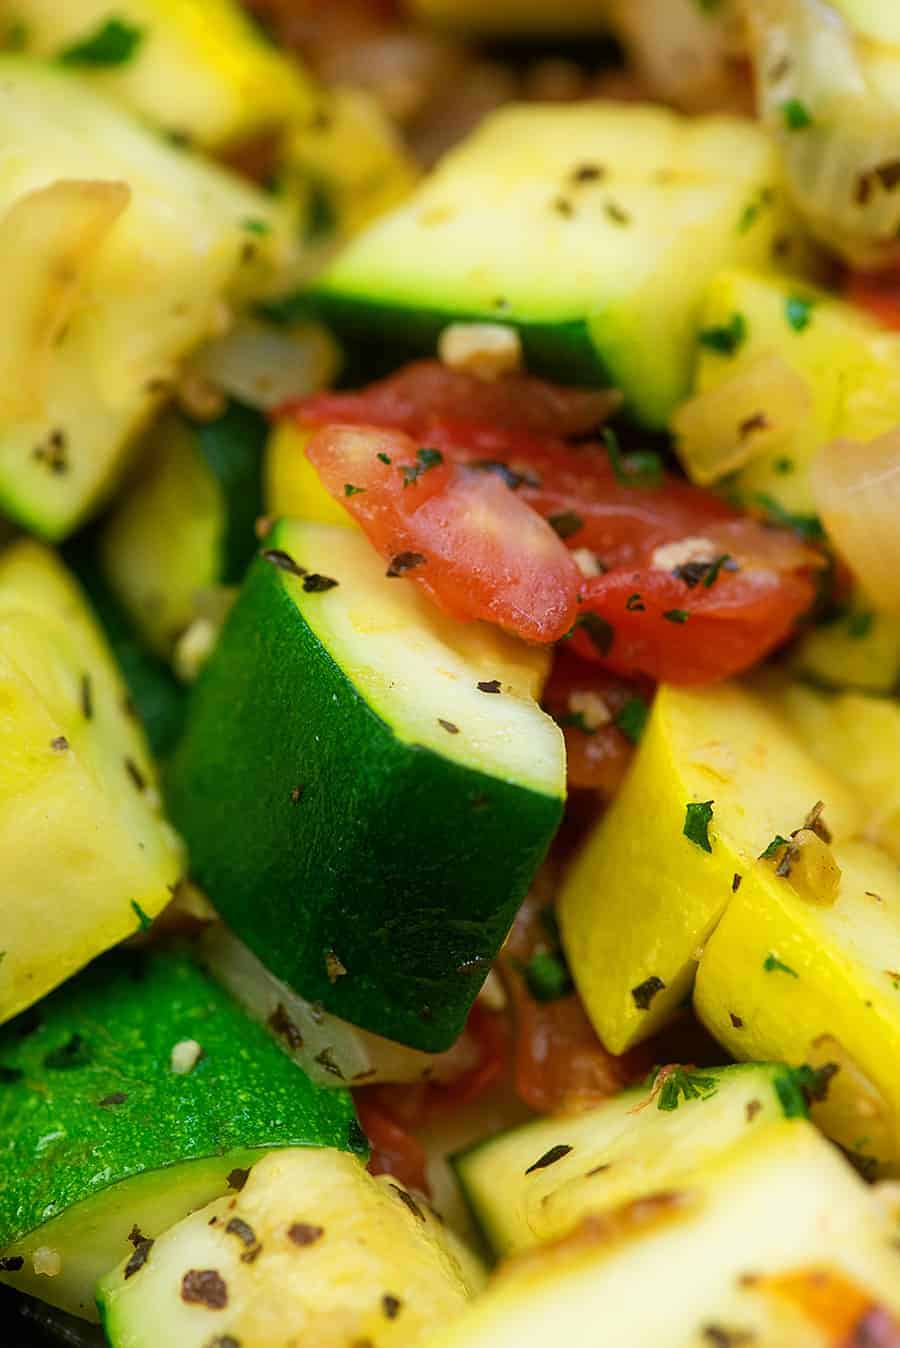 zucchini and tomatoes with seasoning